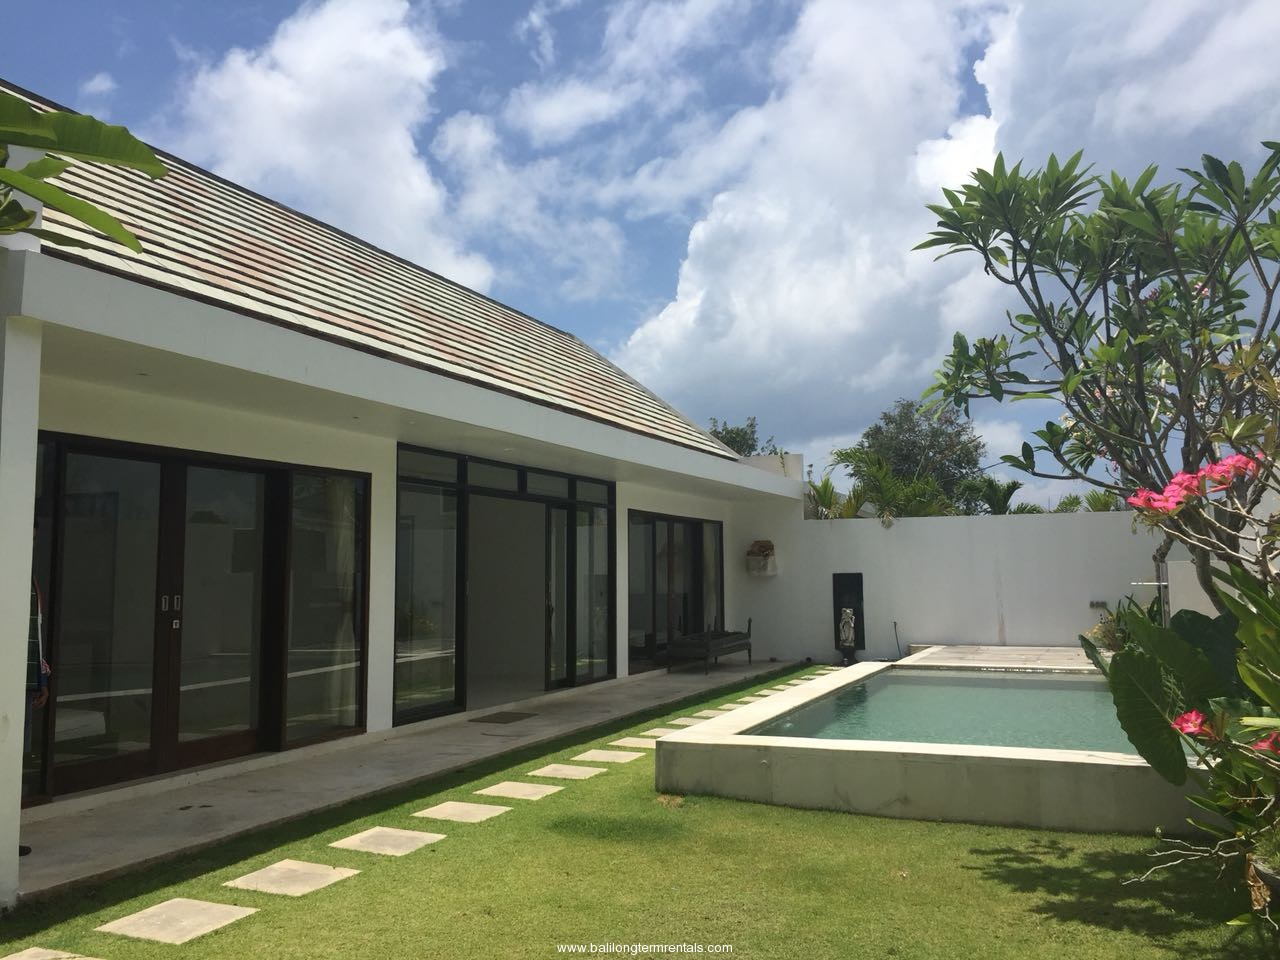 2 bedroom private villa in Nusa Dua area